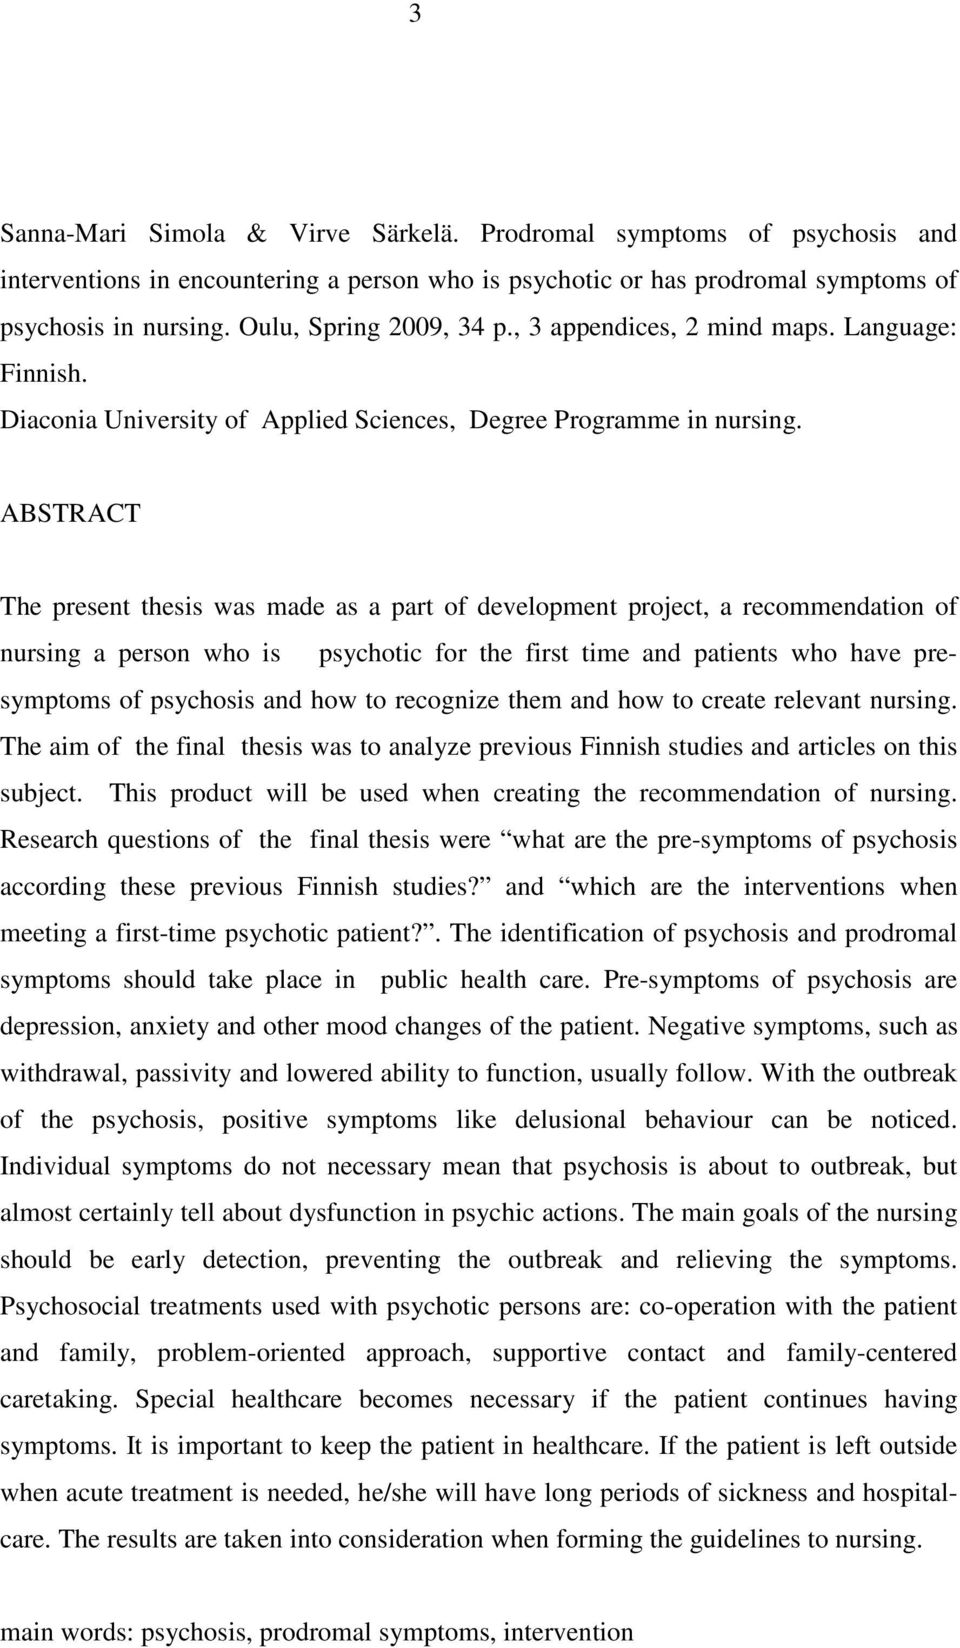 ABSTRACT The present thesis was made as a part of development project, a recommendation of nursing a person who is psychotic for the first time and patients who have presymptoms of psychosis and how